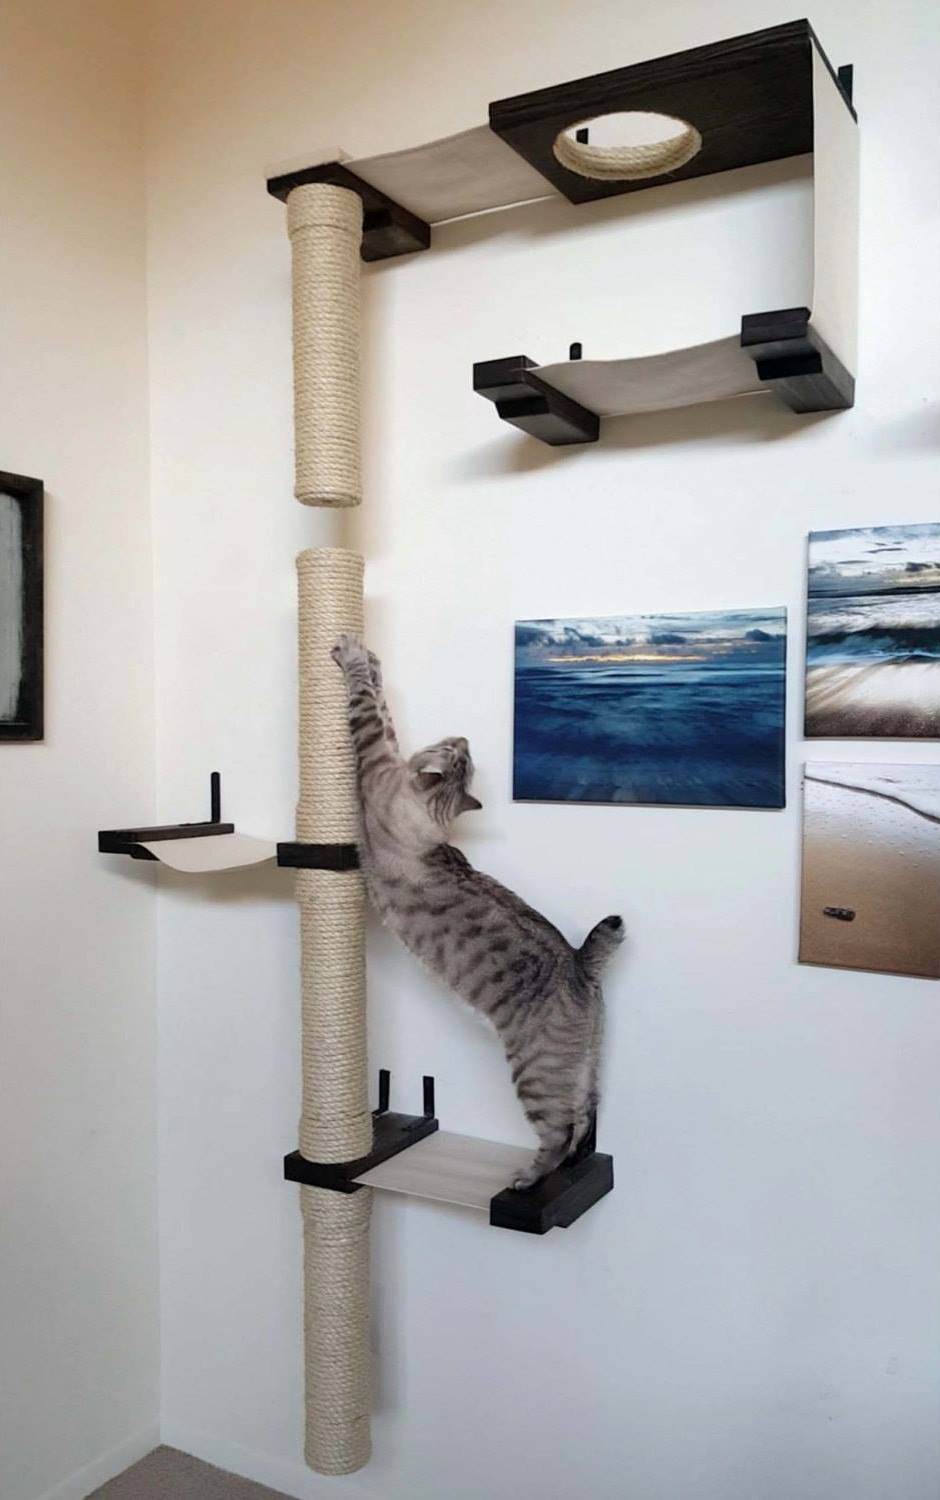 Browse These Fantastic Examples Of Our Customersu0027 Great Cat Wall Shelf  Installations! We Would Love To See Your Cat Wall Systems And Share Them  Here.